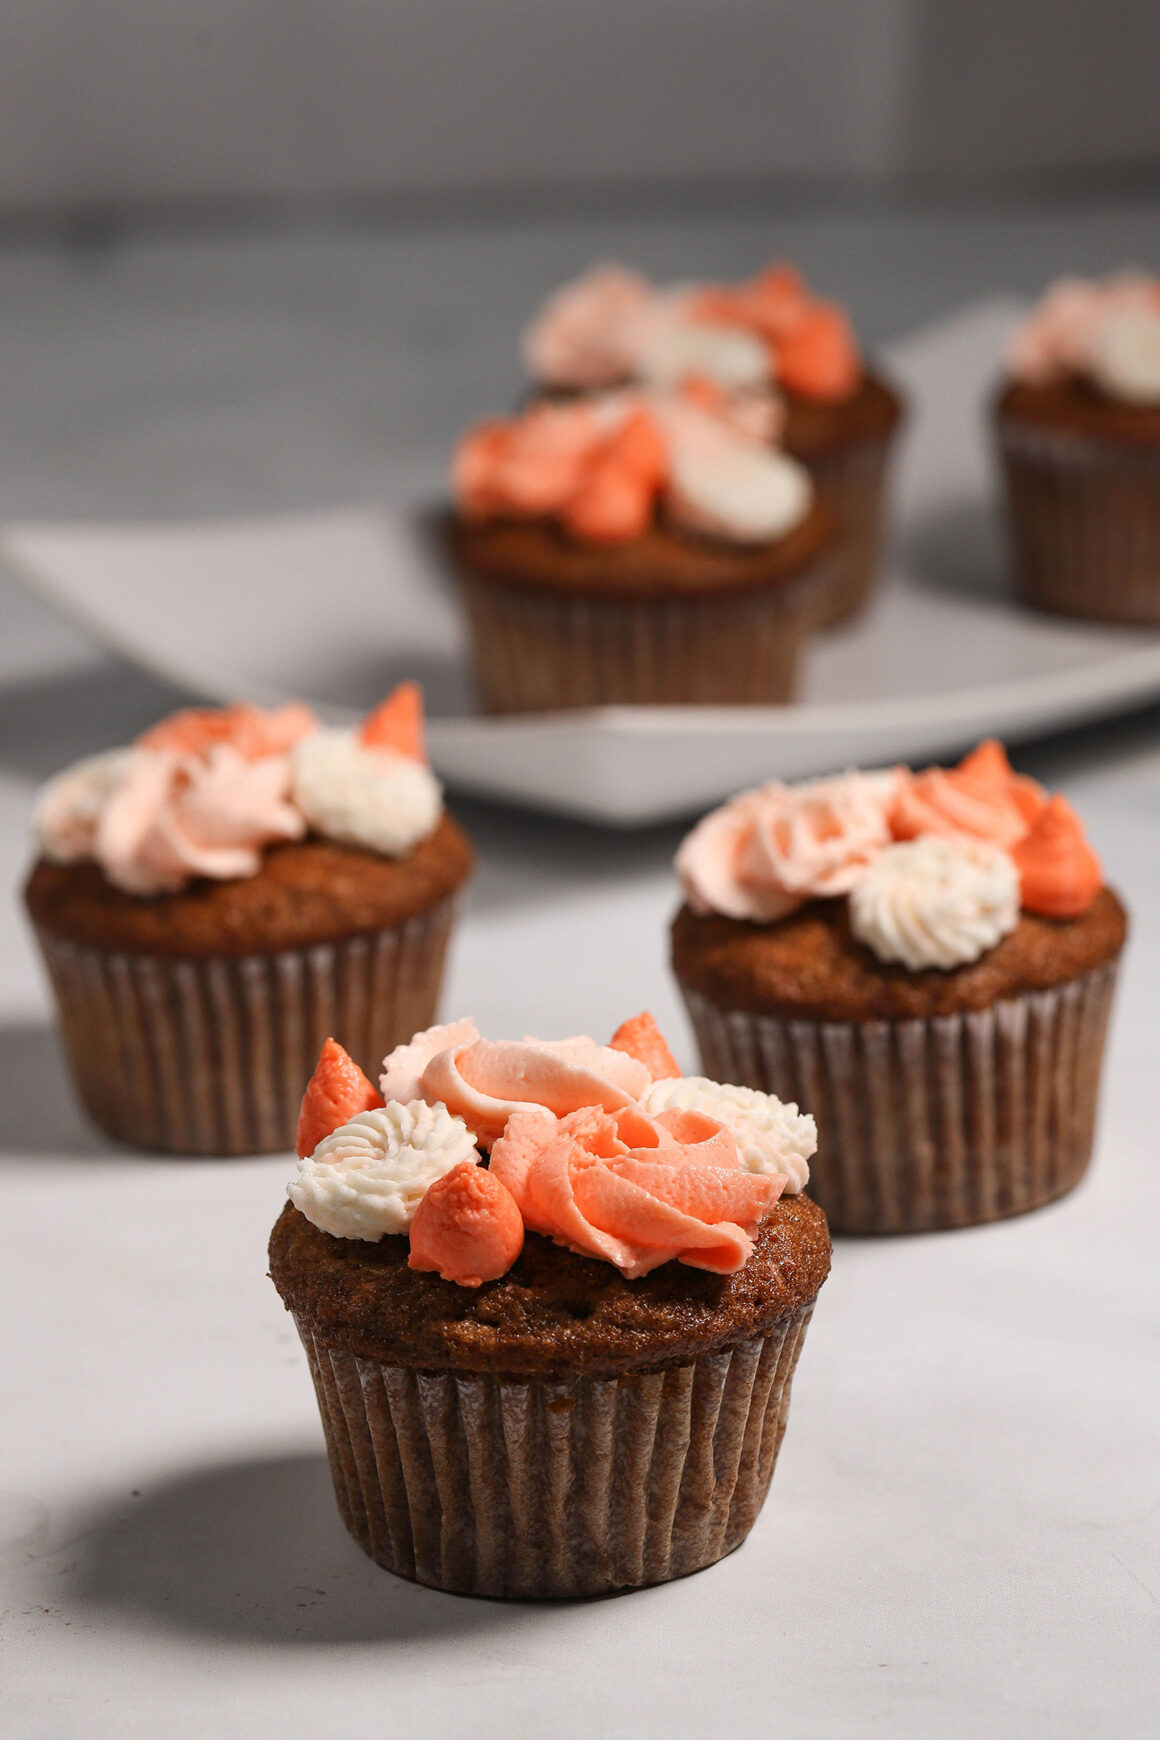 Orange Frosted Pear Cupcakes